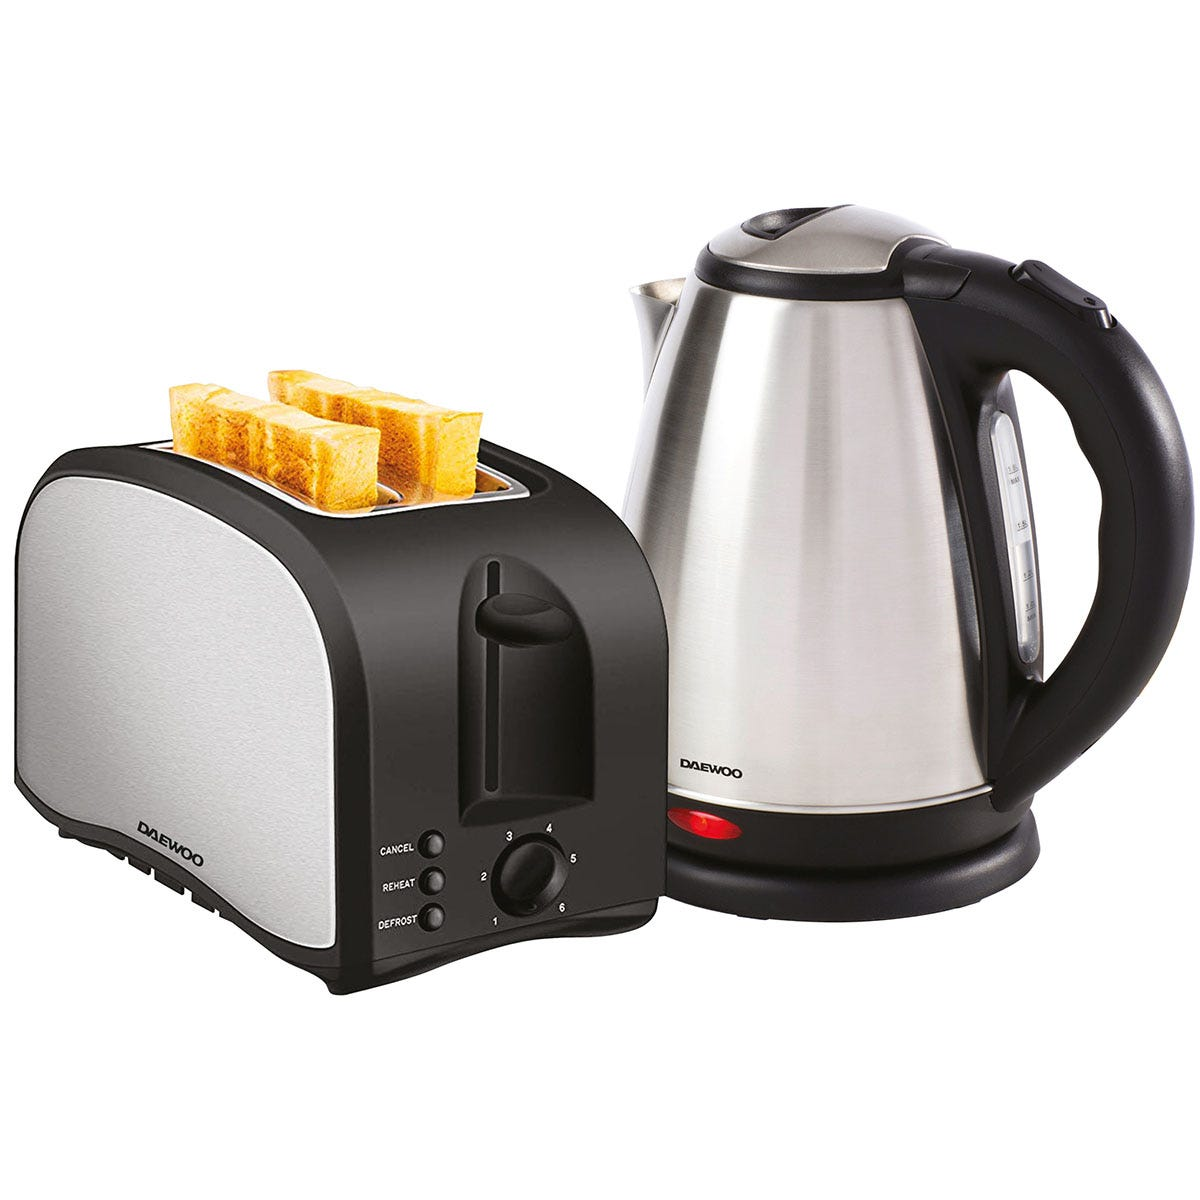 Daewoo SDA1712 Kettle and Toaster Set - Brushed Stainless Steel and Black